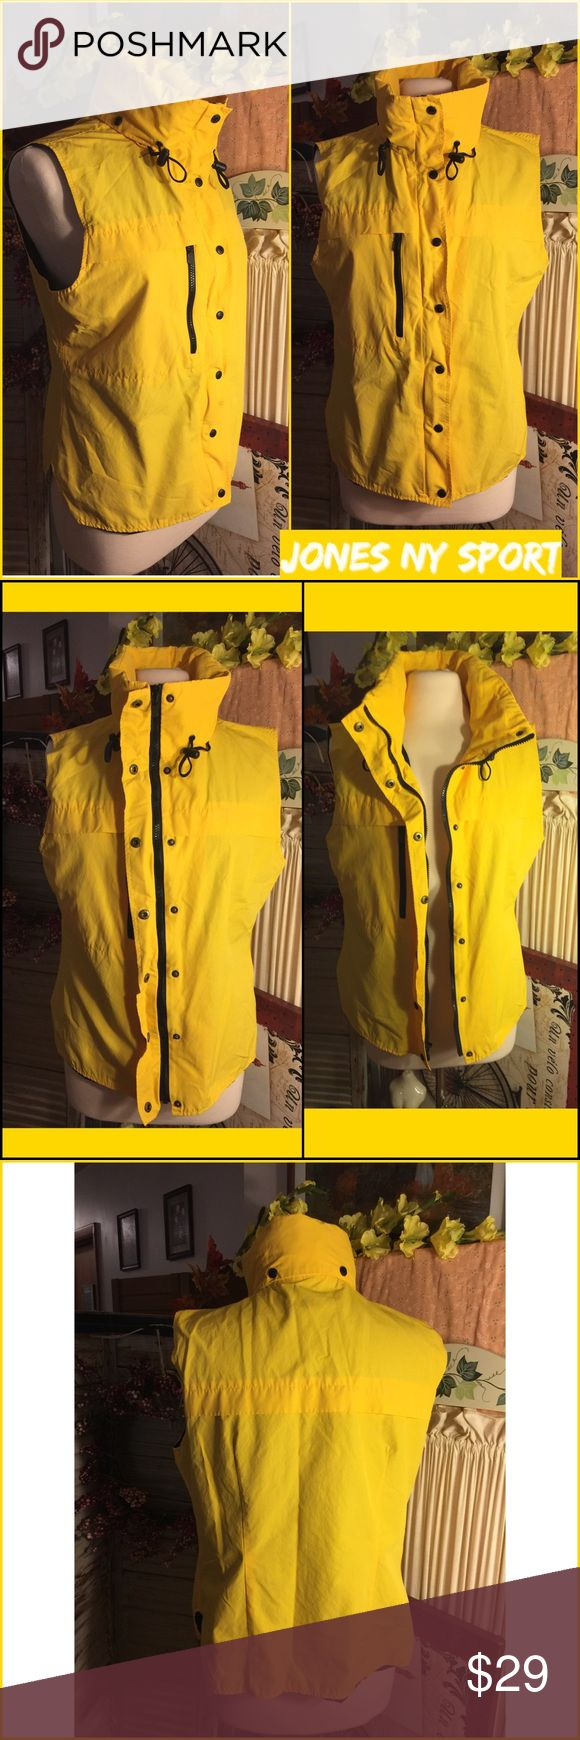 """SALE🌷NWOT-LARGE JONES NY SPORT YELLOW LINED VEST BRIGHT YELLOW WITH BLACK TRIM BRAND NEW ( RETAIL $79) JONES NEW YORK SPORTSWEAR VEST. SHELL:52% NYLON/48% COTTON. 100% POLYESTER LINING/BOTTOM 100% ACETATE. LINING BLACK: SOLID BOTTOM/TOP MESH. ZIPPER CLOSE WITH BUTTON SNAPS AND TIE AT NECK. 24"""" LONG. LARGE. MEASUREMENTS LYING FLAT: 20"""" BUST; 21"""" HIPS ACROSS BOTTOM. PLEASE DO  NOT HESITATE TO ASK ANY QUESTIONS! #nwot #jonesnewyorksportswear #brightyellow #blacktrim #blacklined #vest Jones New…"""